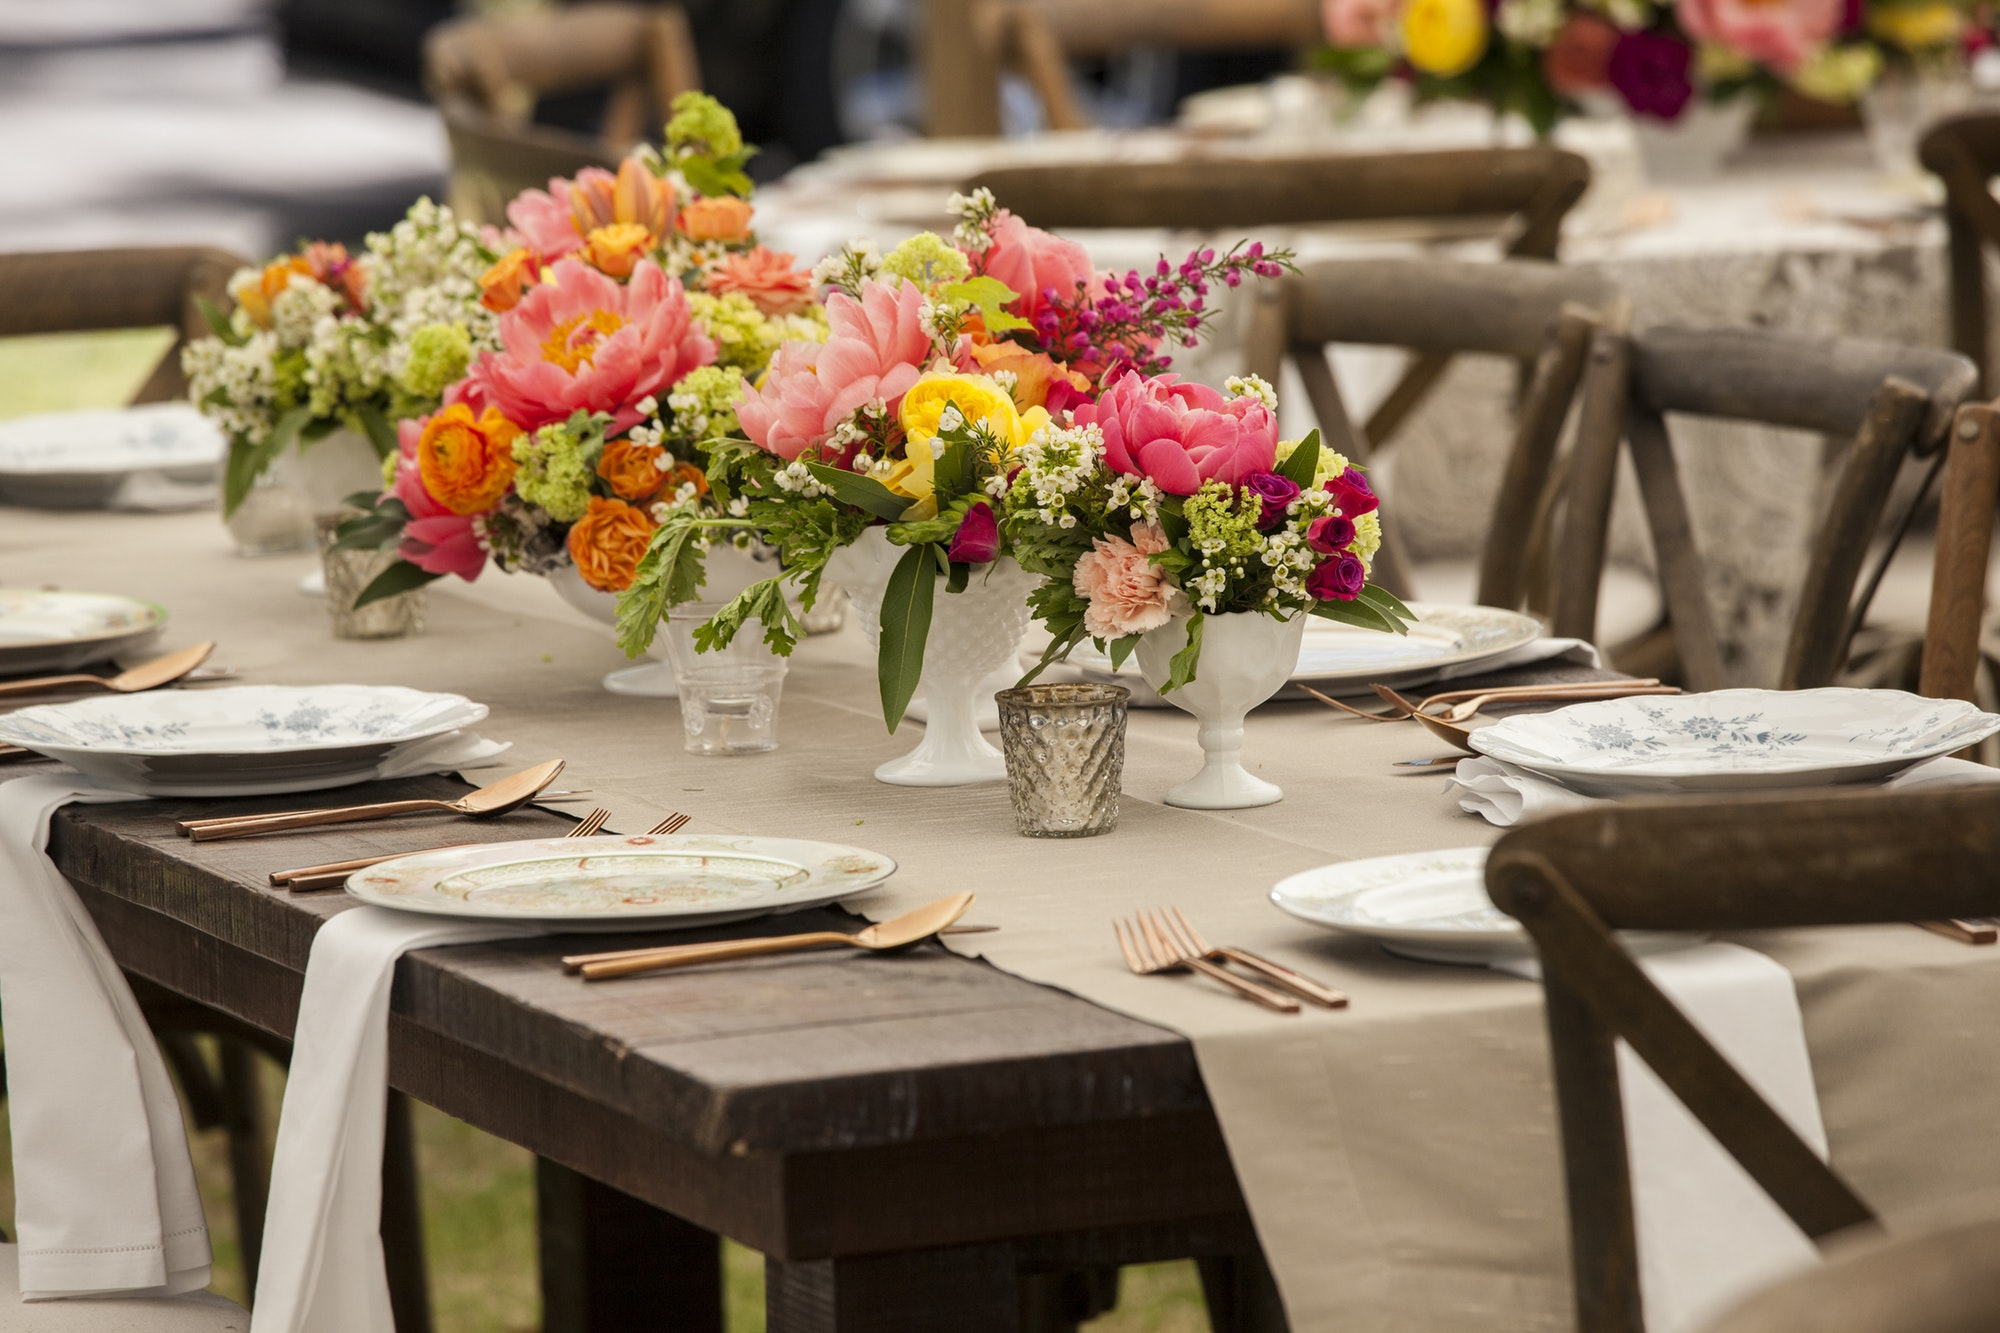 Things To Consider When Choosing A Wedding Theme